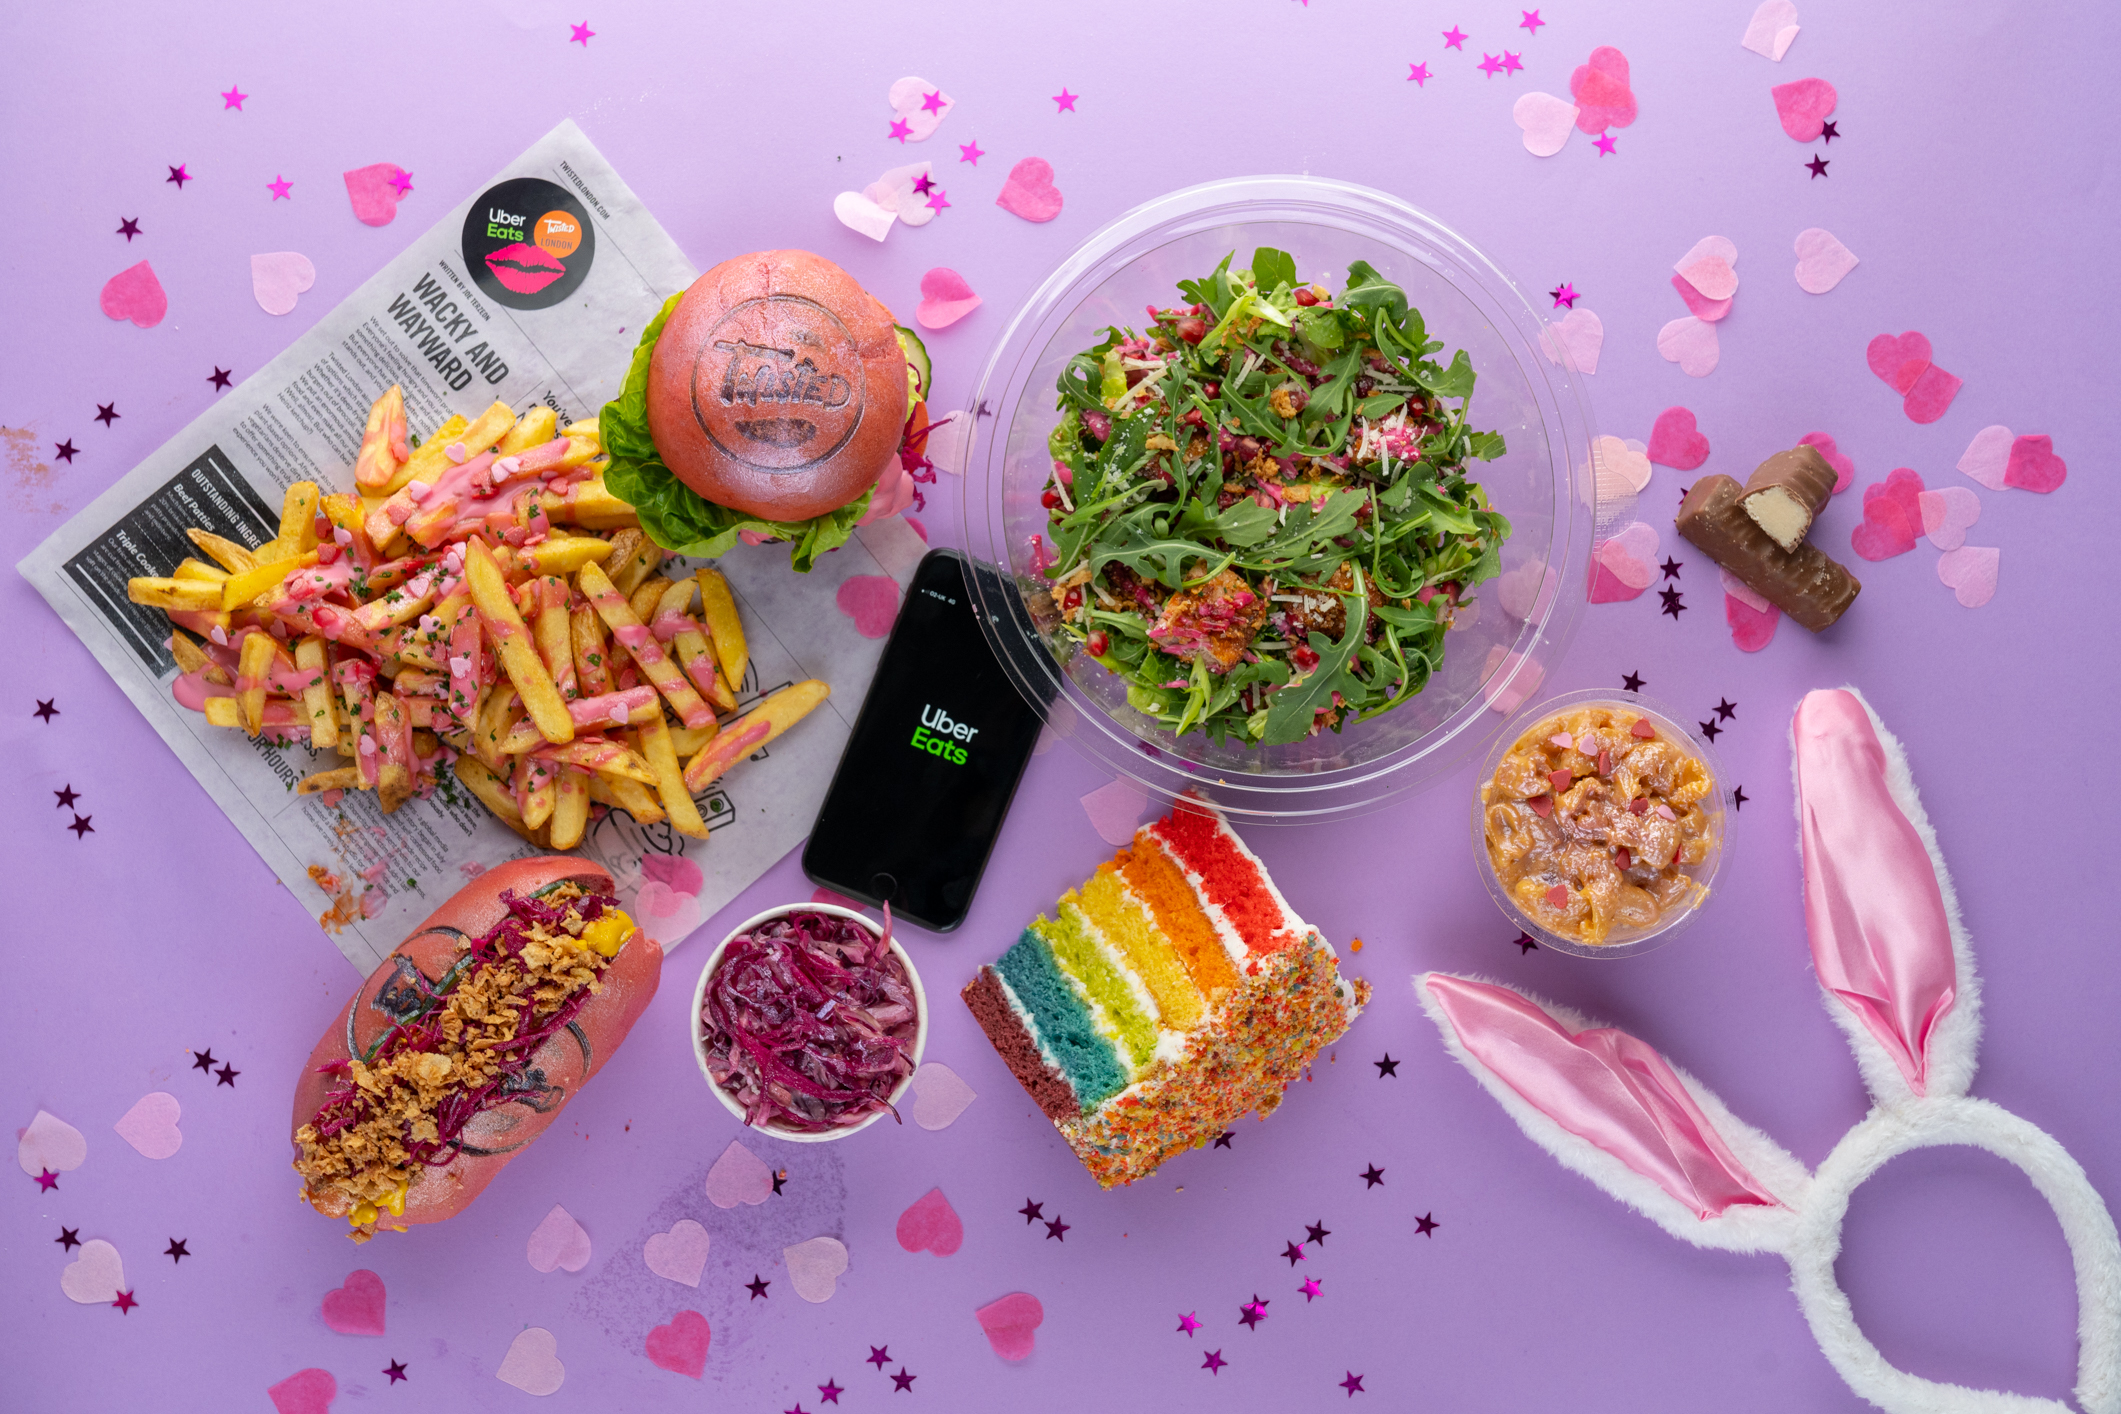 Uber Eats launches limited edition Pink Wednesday menu and it's so fetch